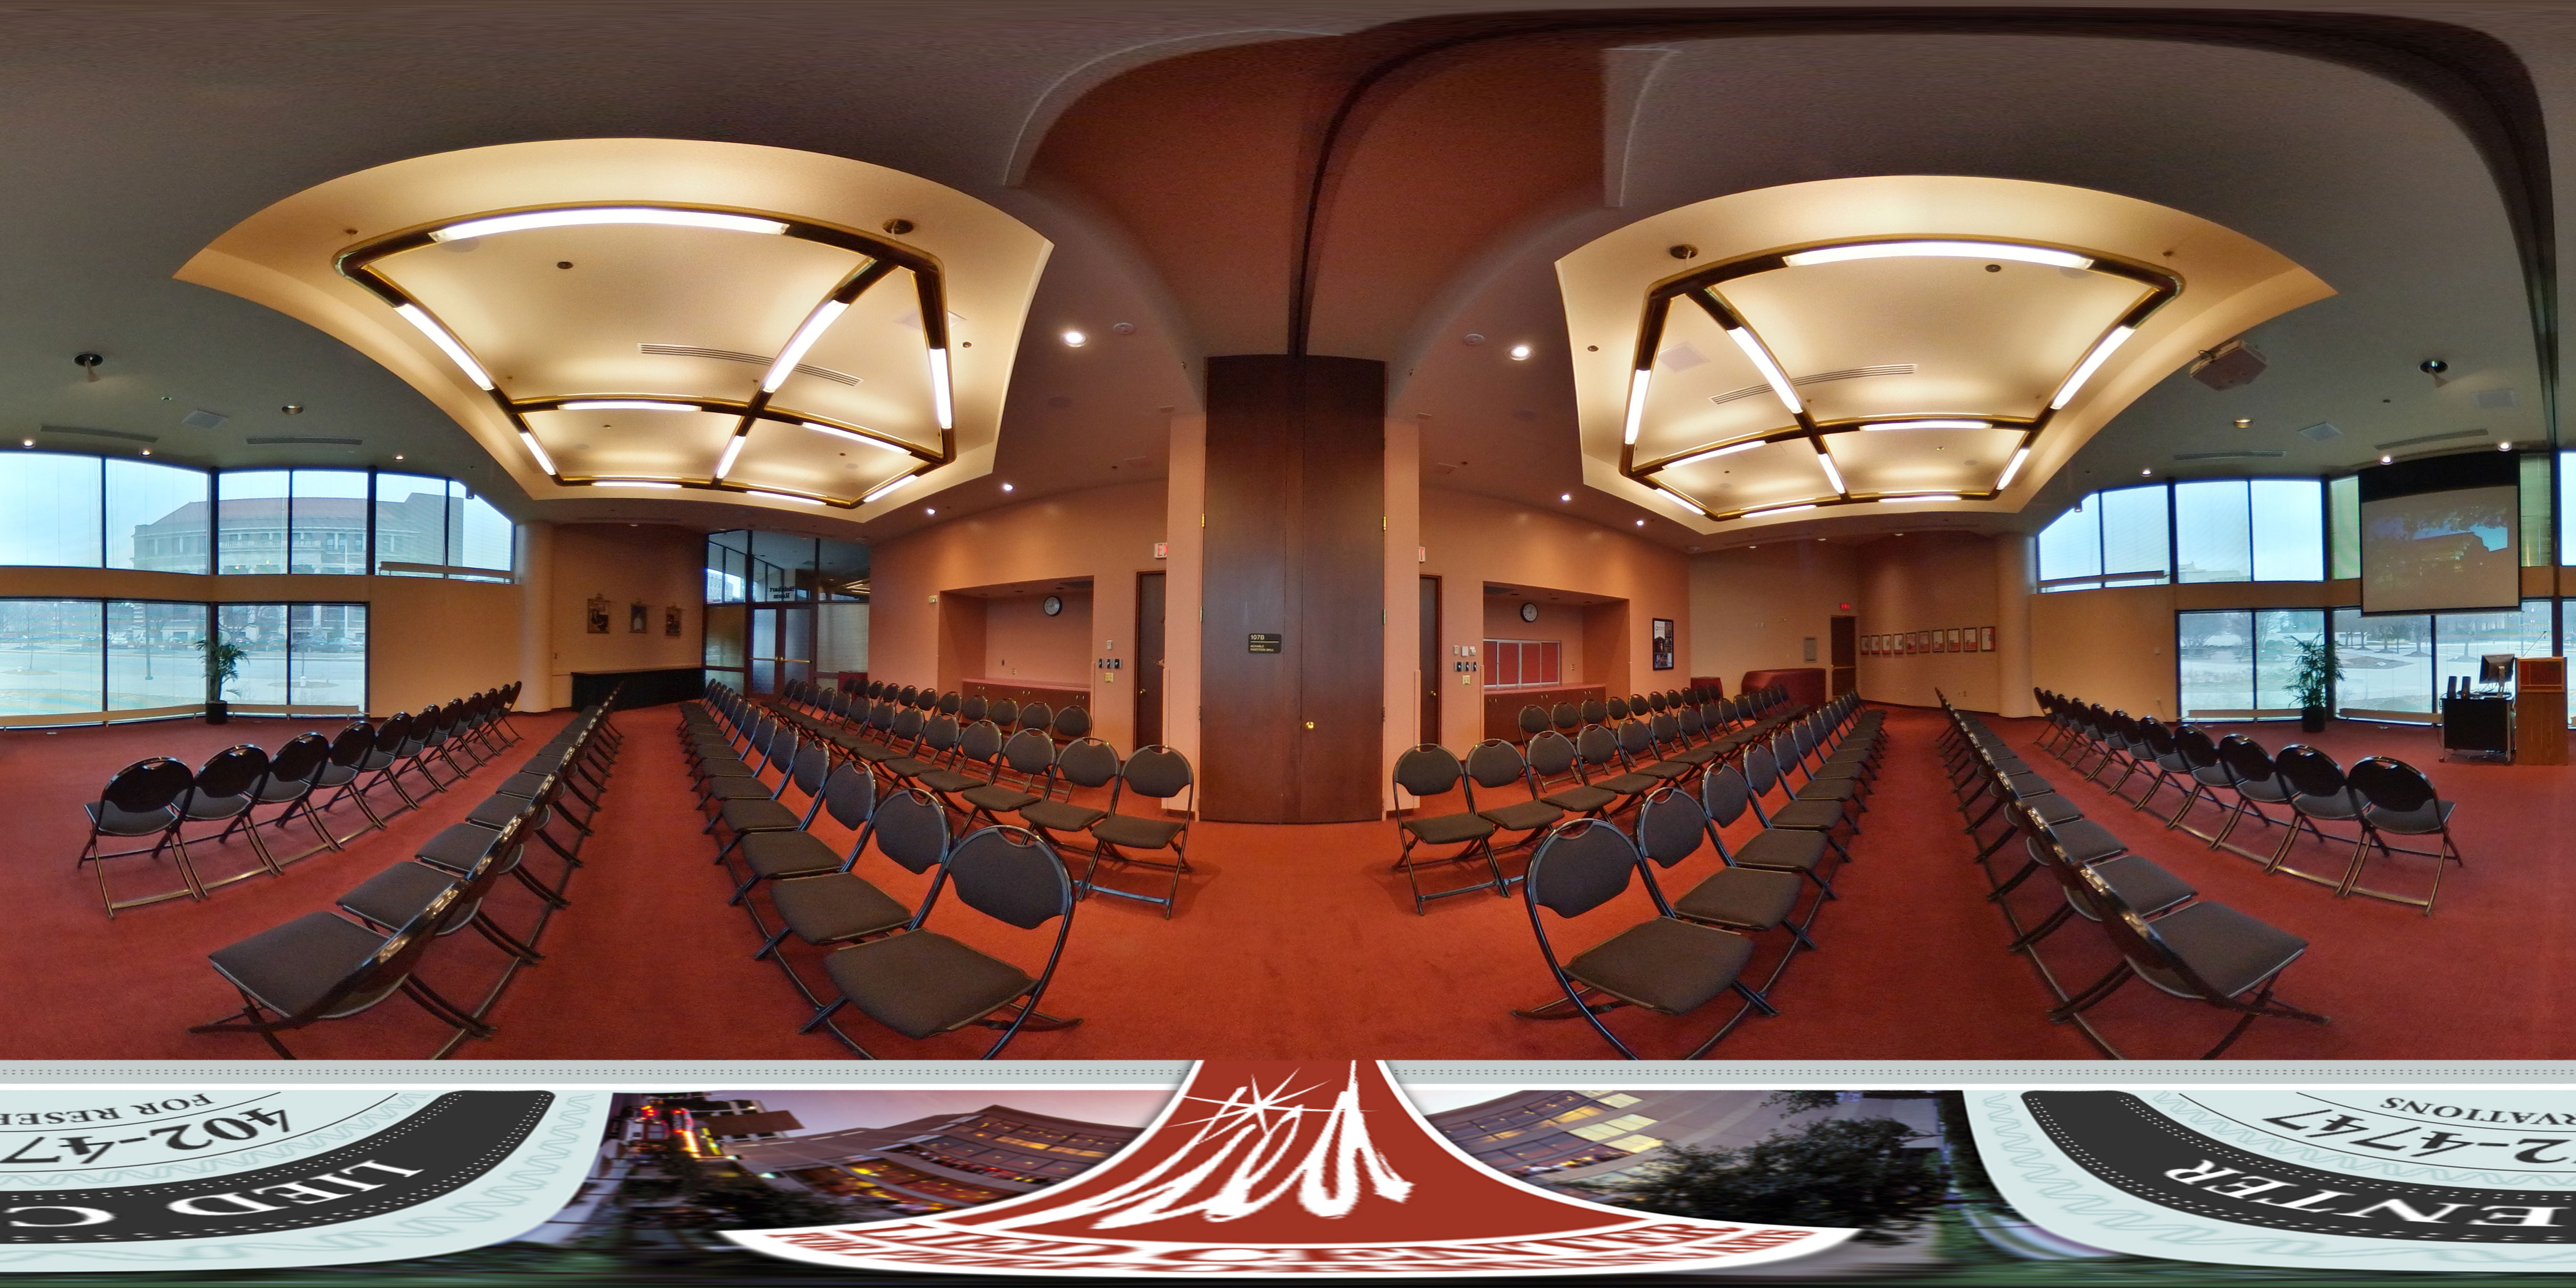 Virtual tour of the Lied Center Steinhart Room showing the view of the campus, projection screen and A/V cart, and the black chairs set up for a lecture.